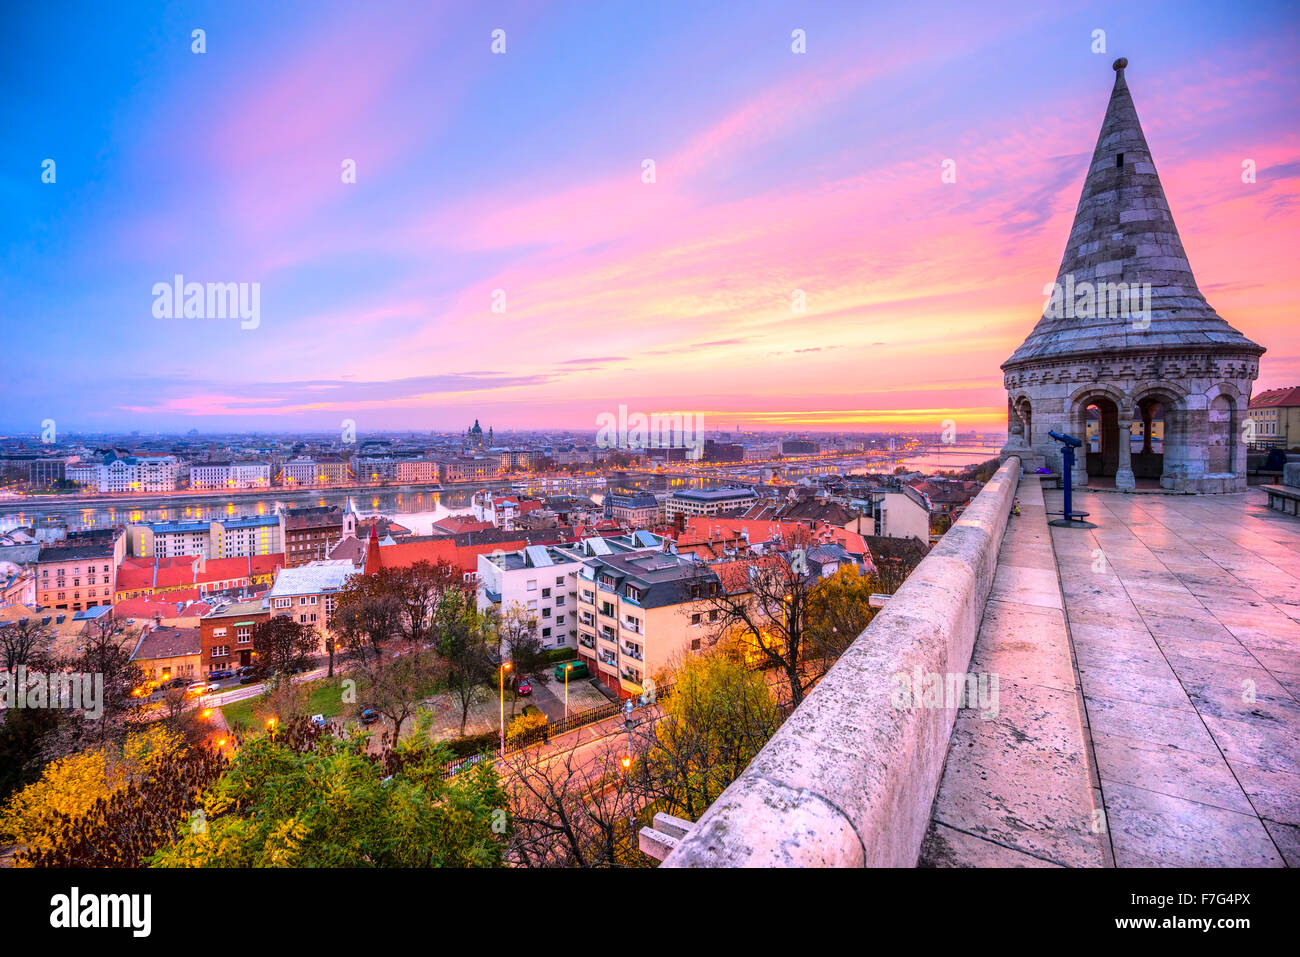 View of Budapest from the Fisherman's Bastion, Hungary - Stock Image